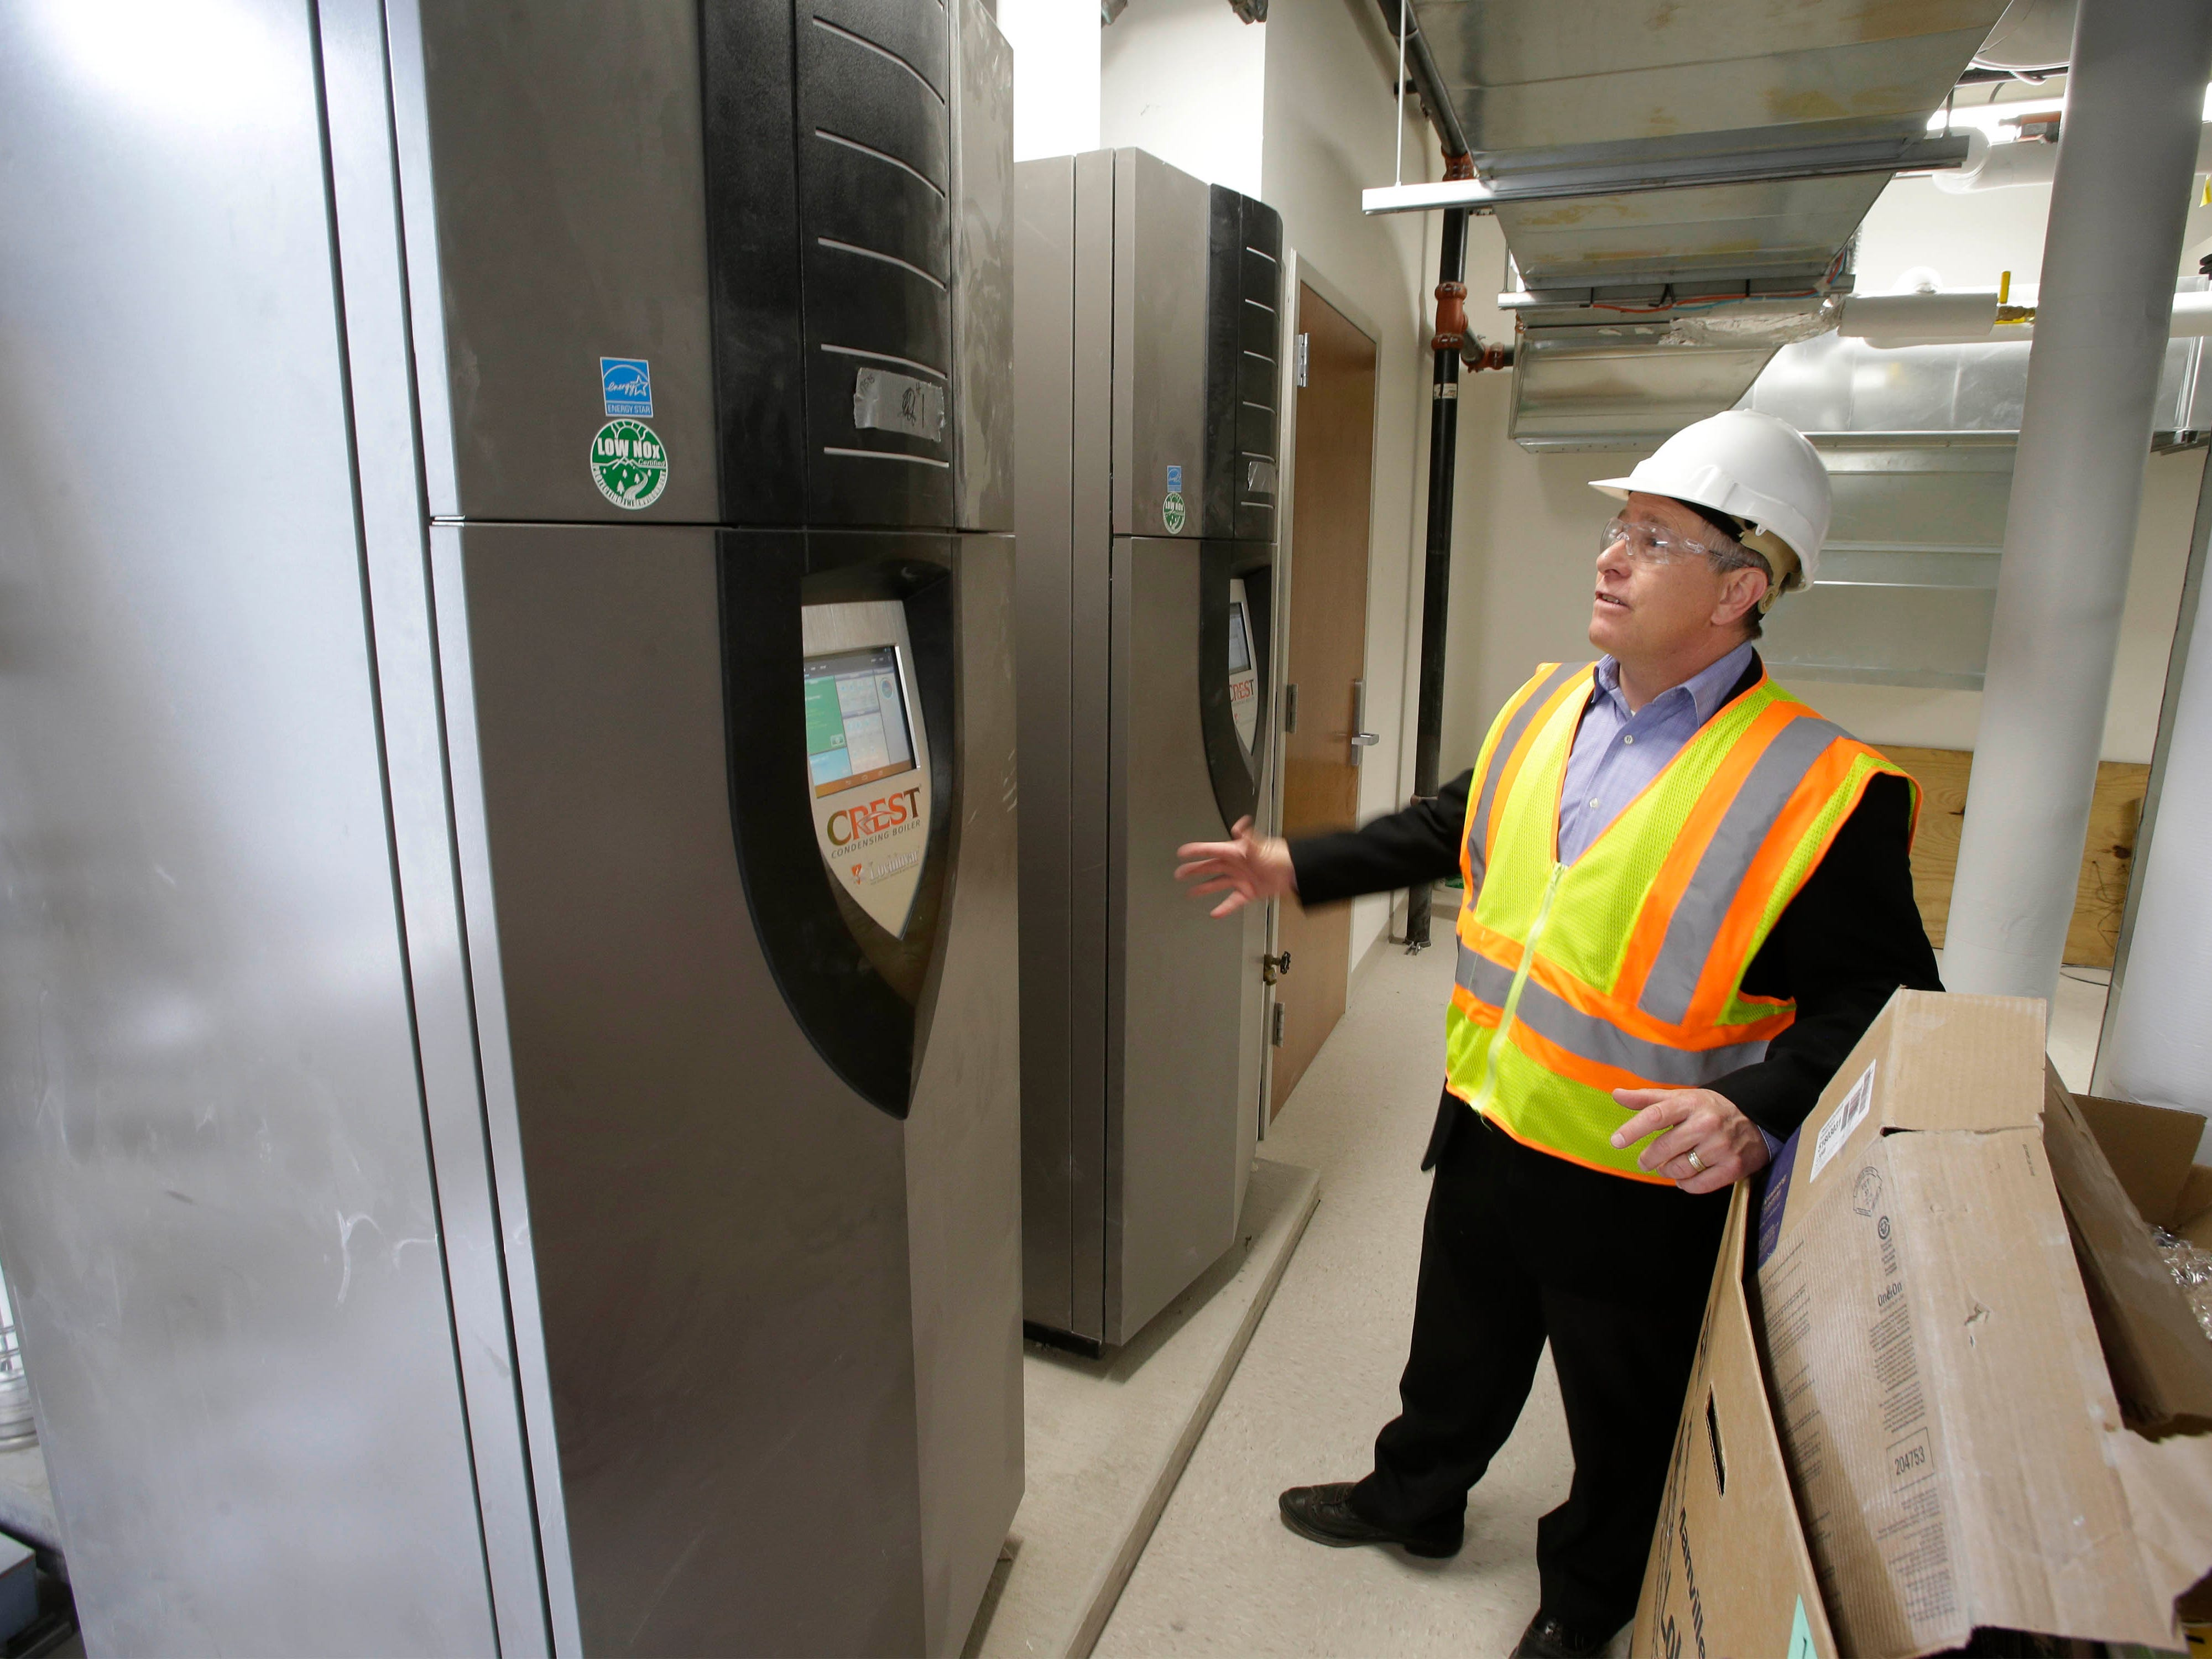 Director of Public Works Dave Biebel points out the new highly efficient boilers that have been installed during the City Hall Remodeling project,Tuesday, May 7, 2019, in Sheboygan, Wis.